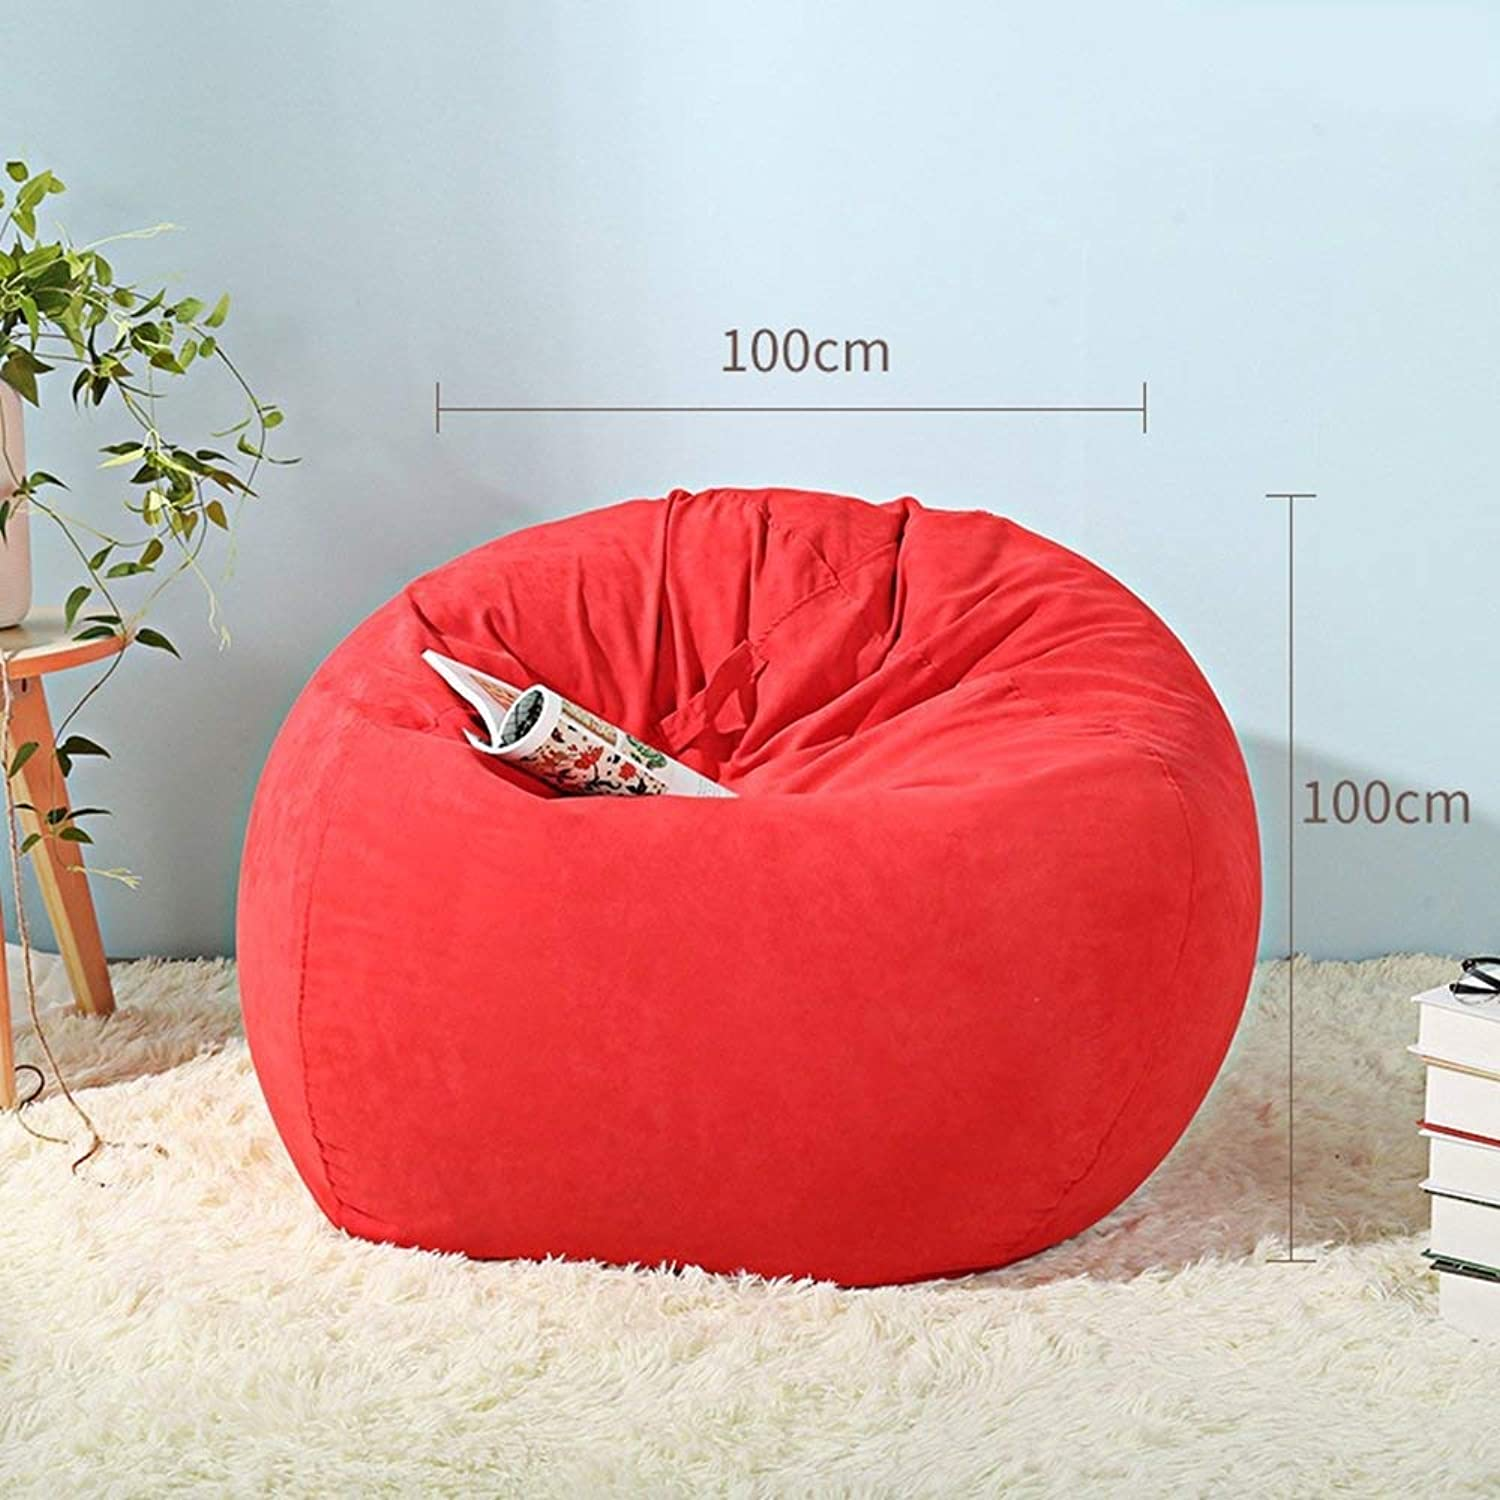 QTQZ Brisk- Bean Bag Lazy Sofa Cute Creative Removable Washable Soft Stool Single Room with Bay Window Sofa Stool (color Optional) (color  C-100cm)